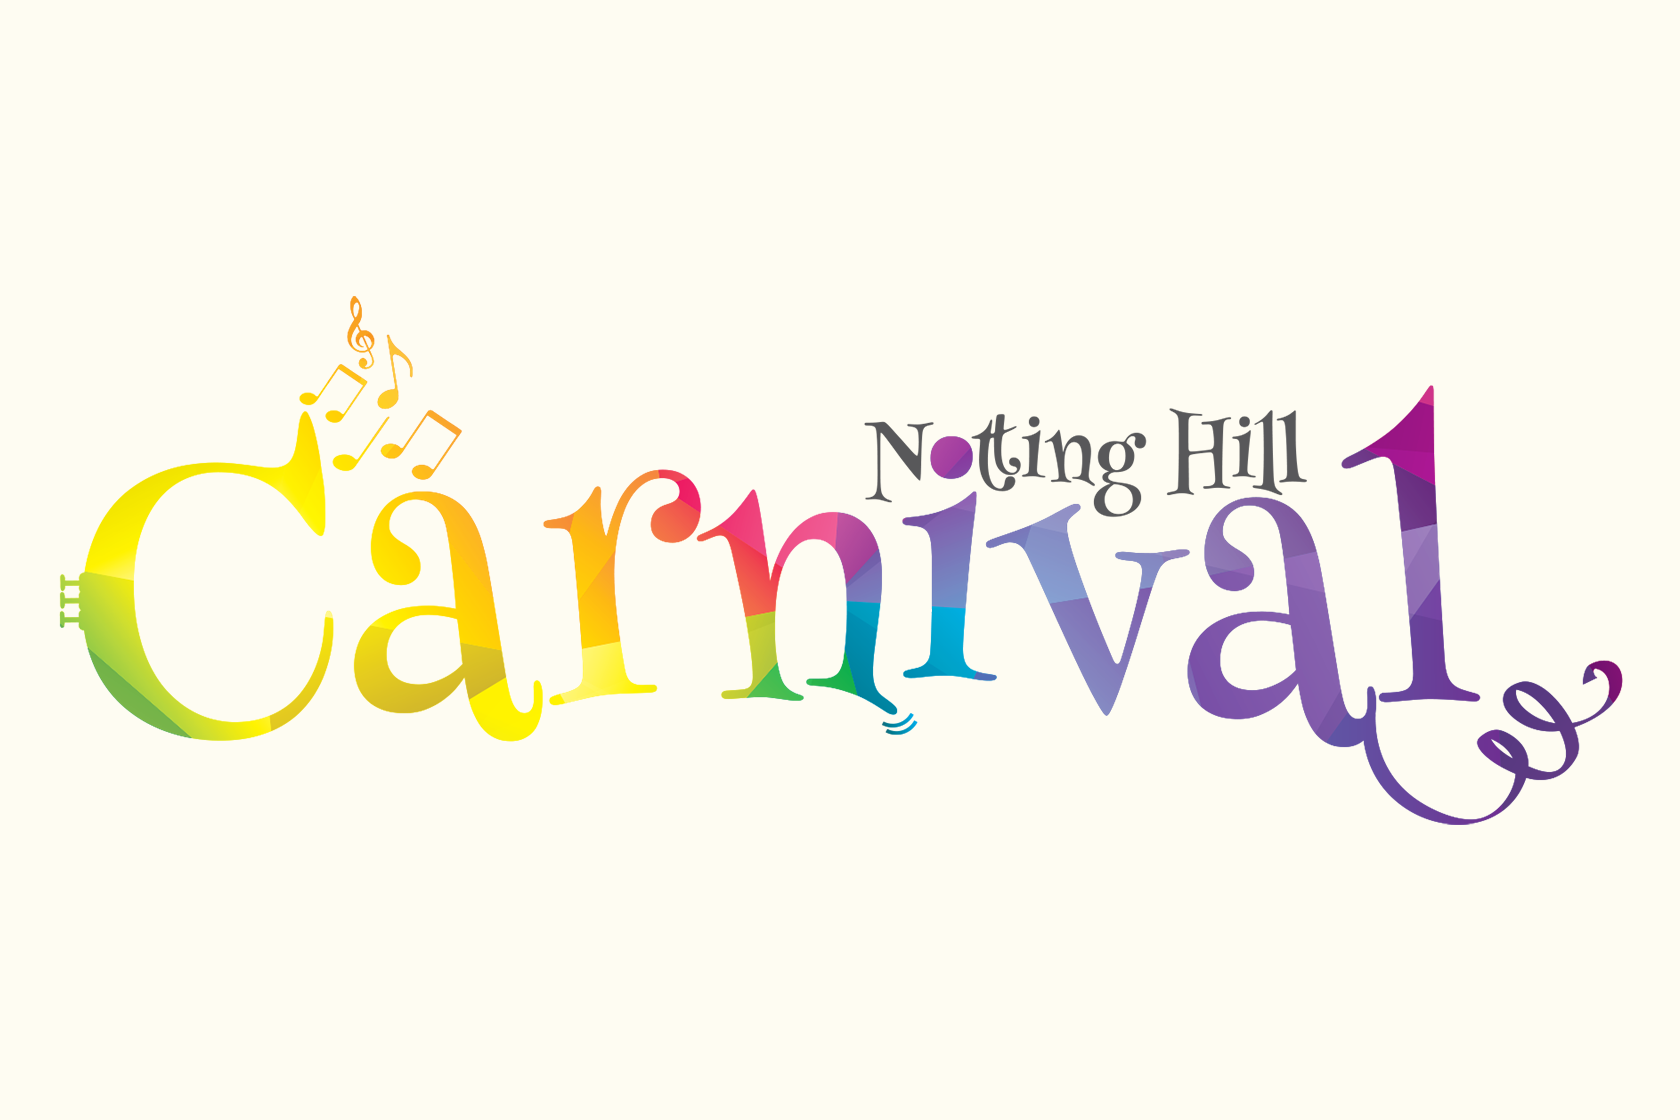 Notting Hill Carnival - Europe's largest street-based event